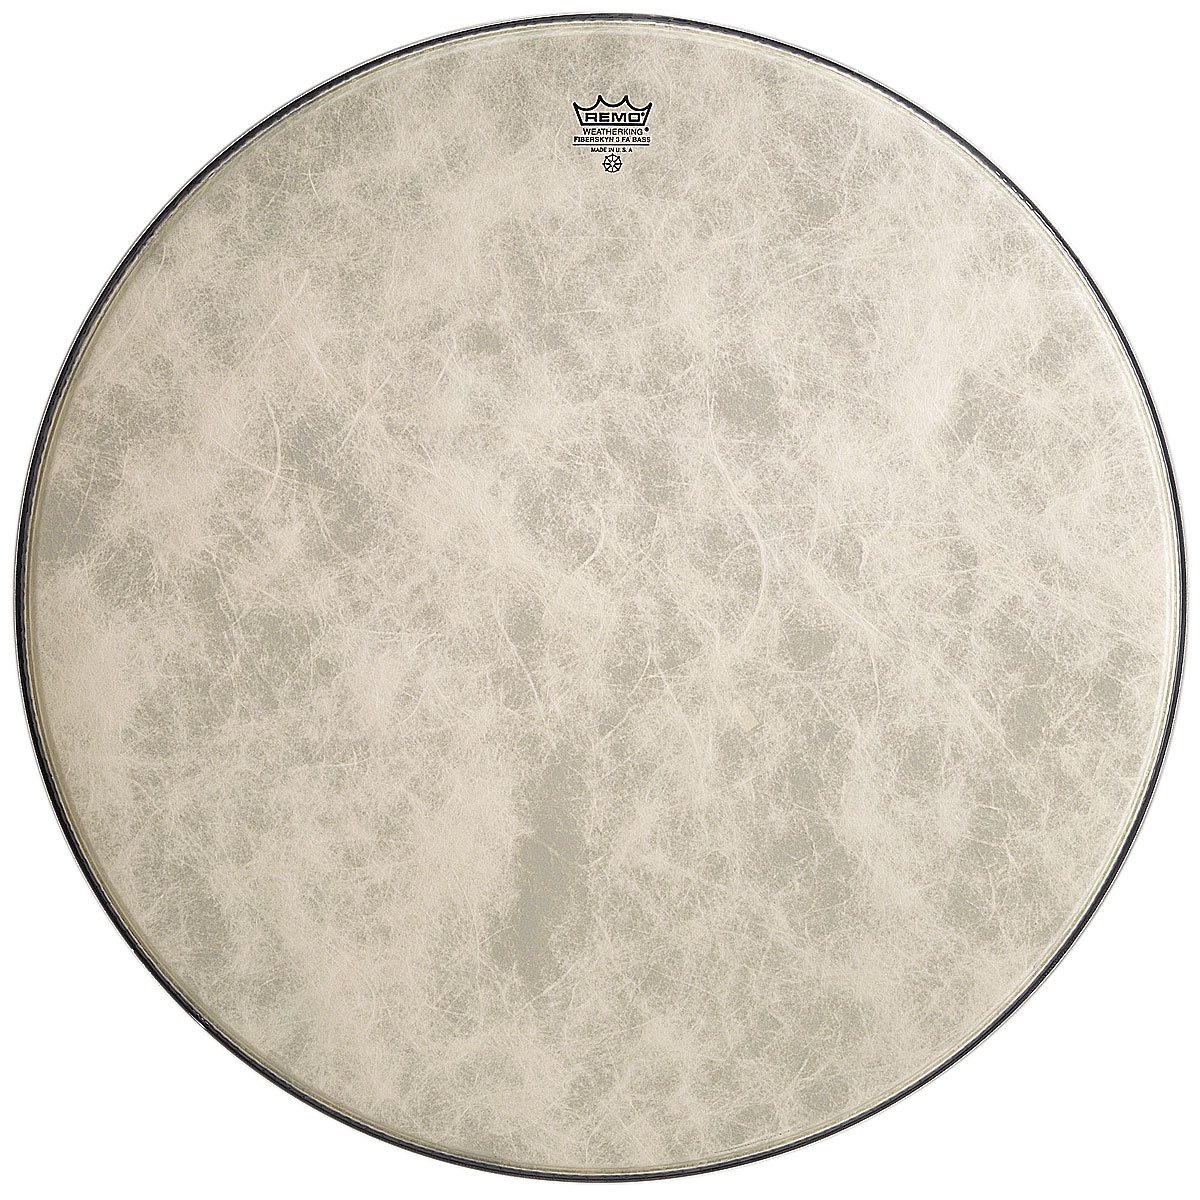 "Remo 28"" Ambassador Fiberskyn Bass Drum Head"